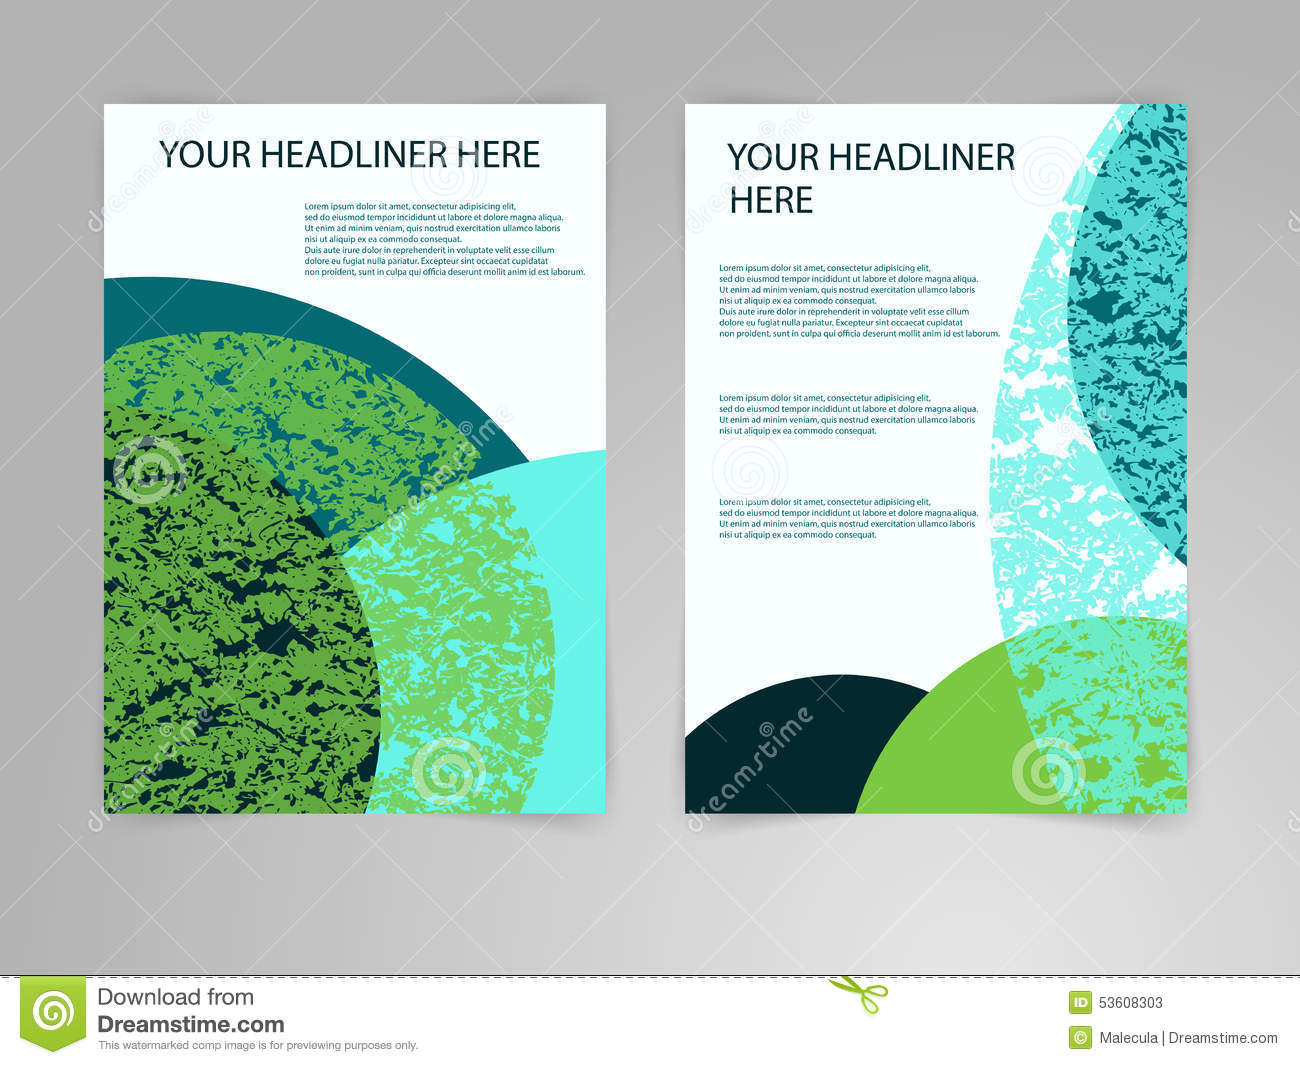 Powerpoint templates free download biology images for Ucl powerpoint template